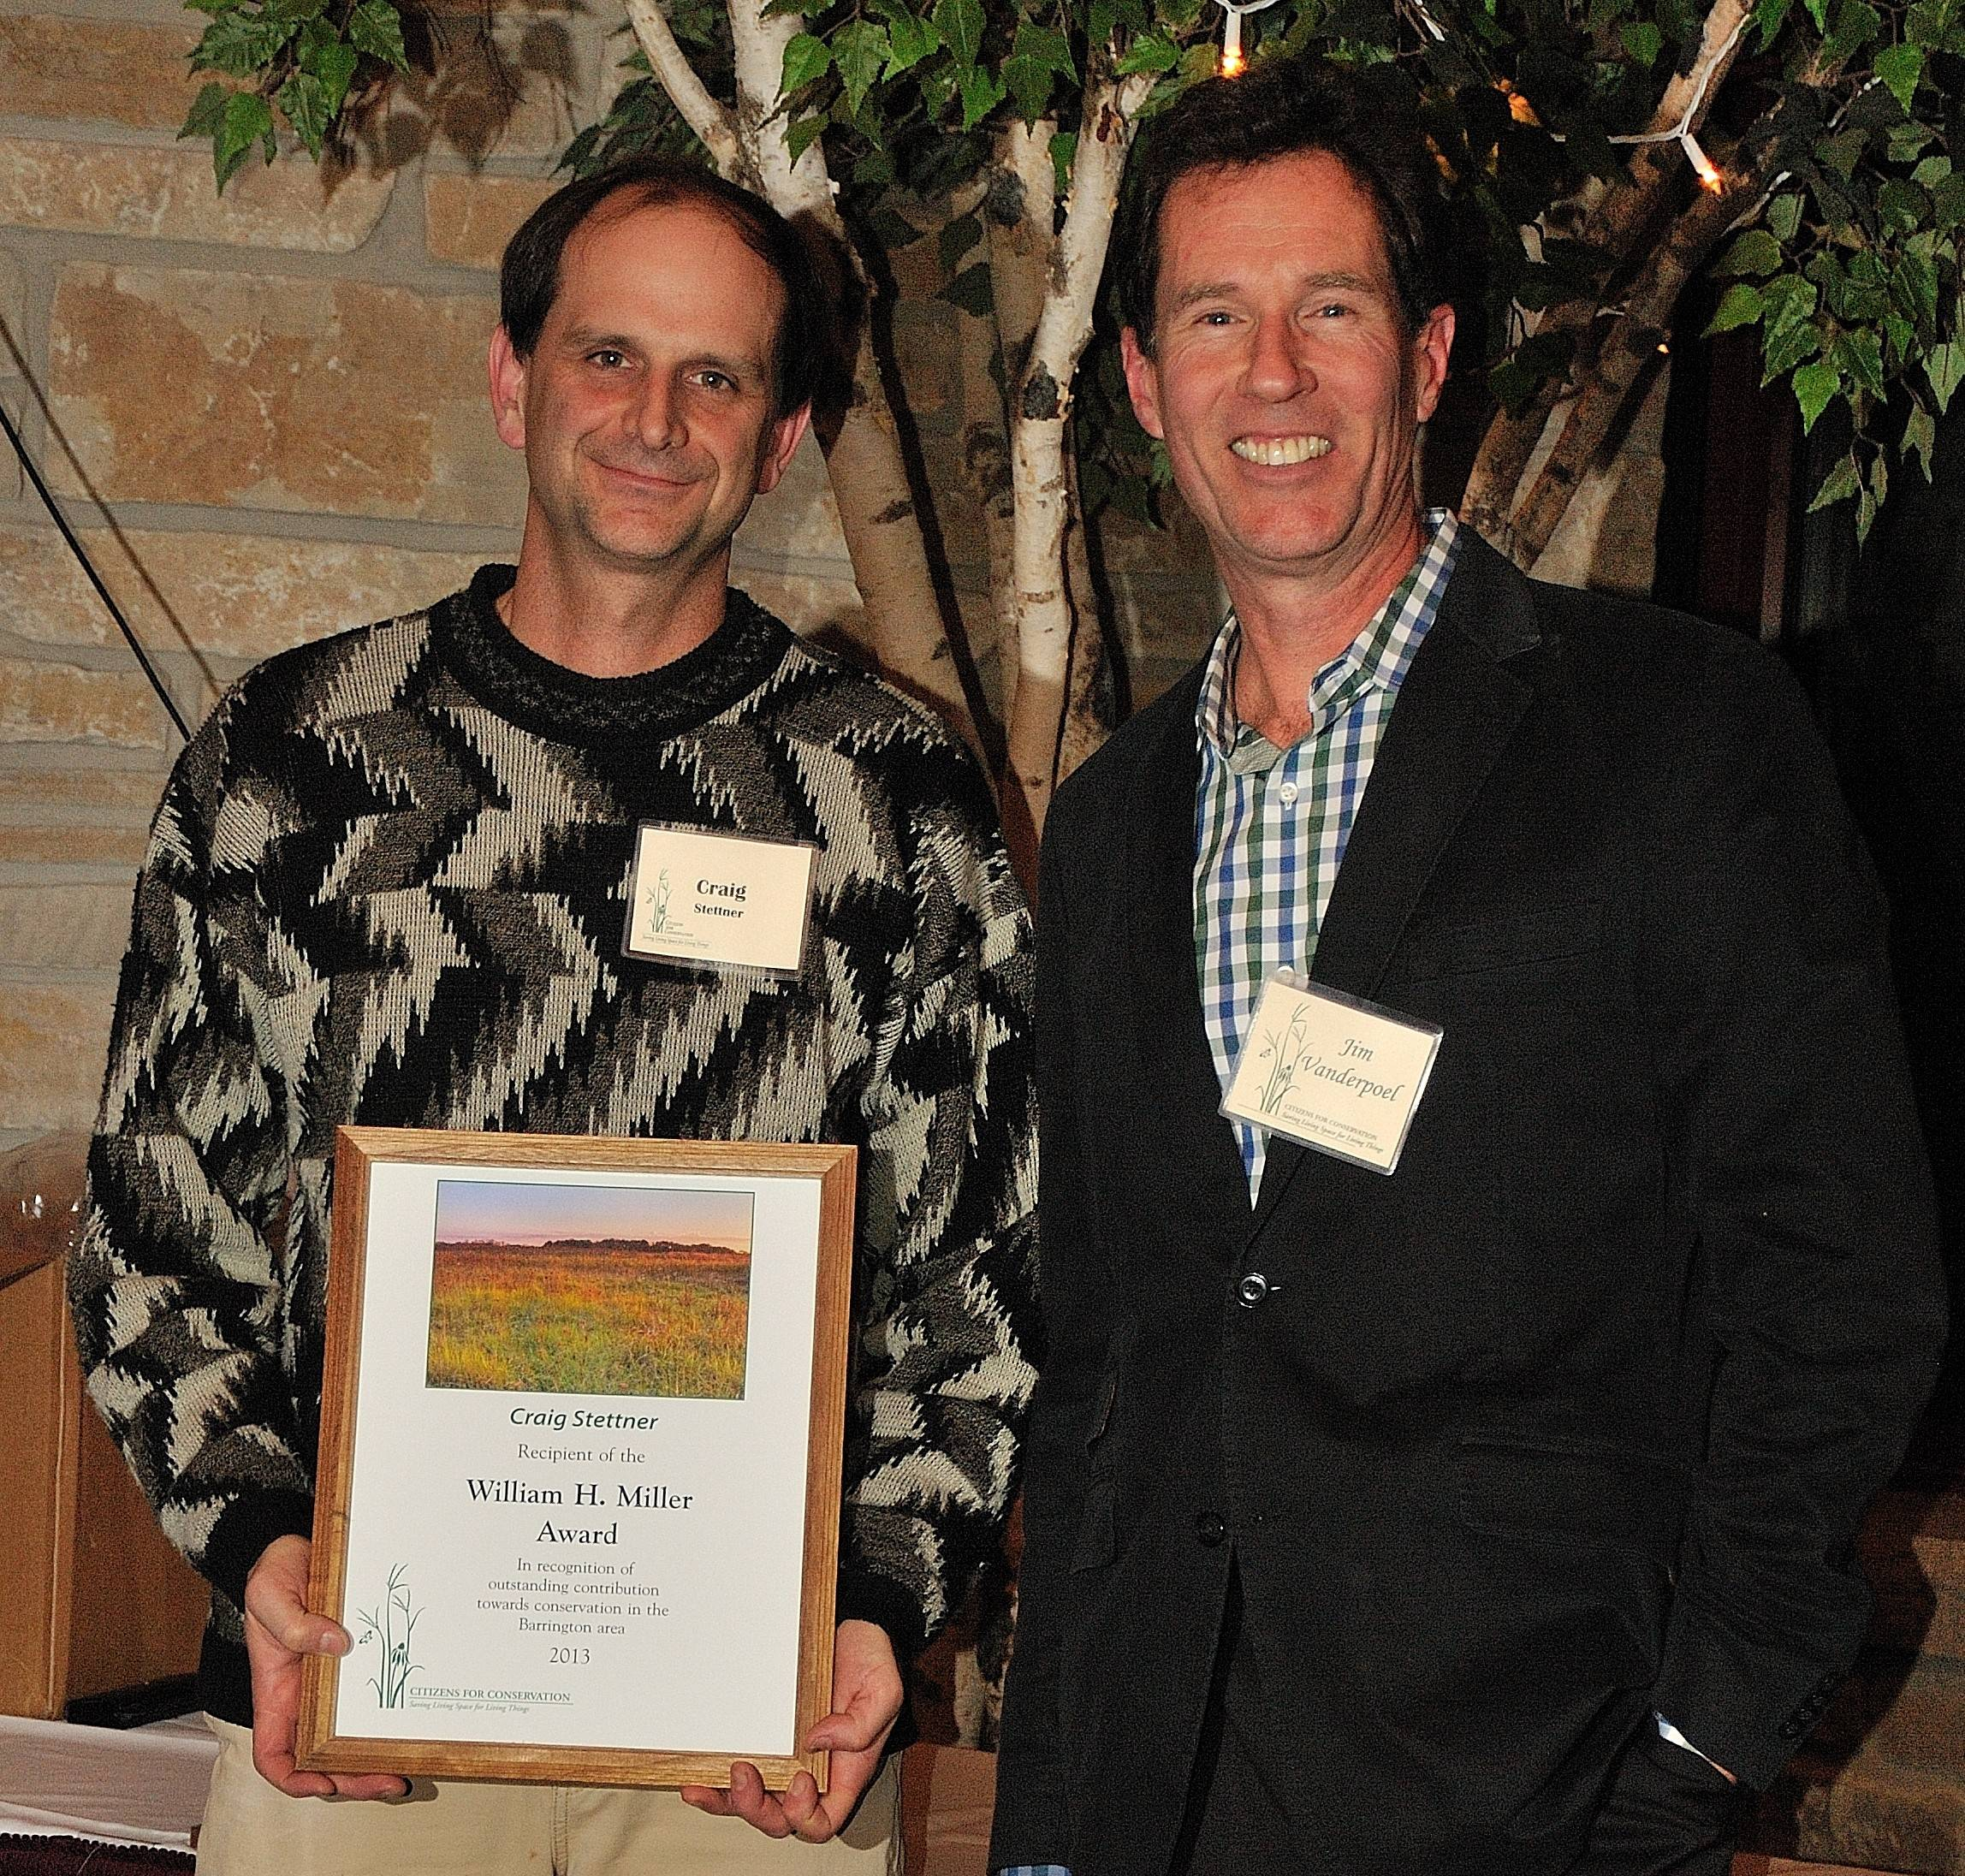 Harper College Associate Professor Craig Stettner, left, received an award in 2013 from Citizens for Conservation in Barrington for his many years of leading students to volunteer for local environmental organizations. Jim Vanderpoel of Citizens for Conservation presented the honor to Stettner.